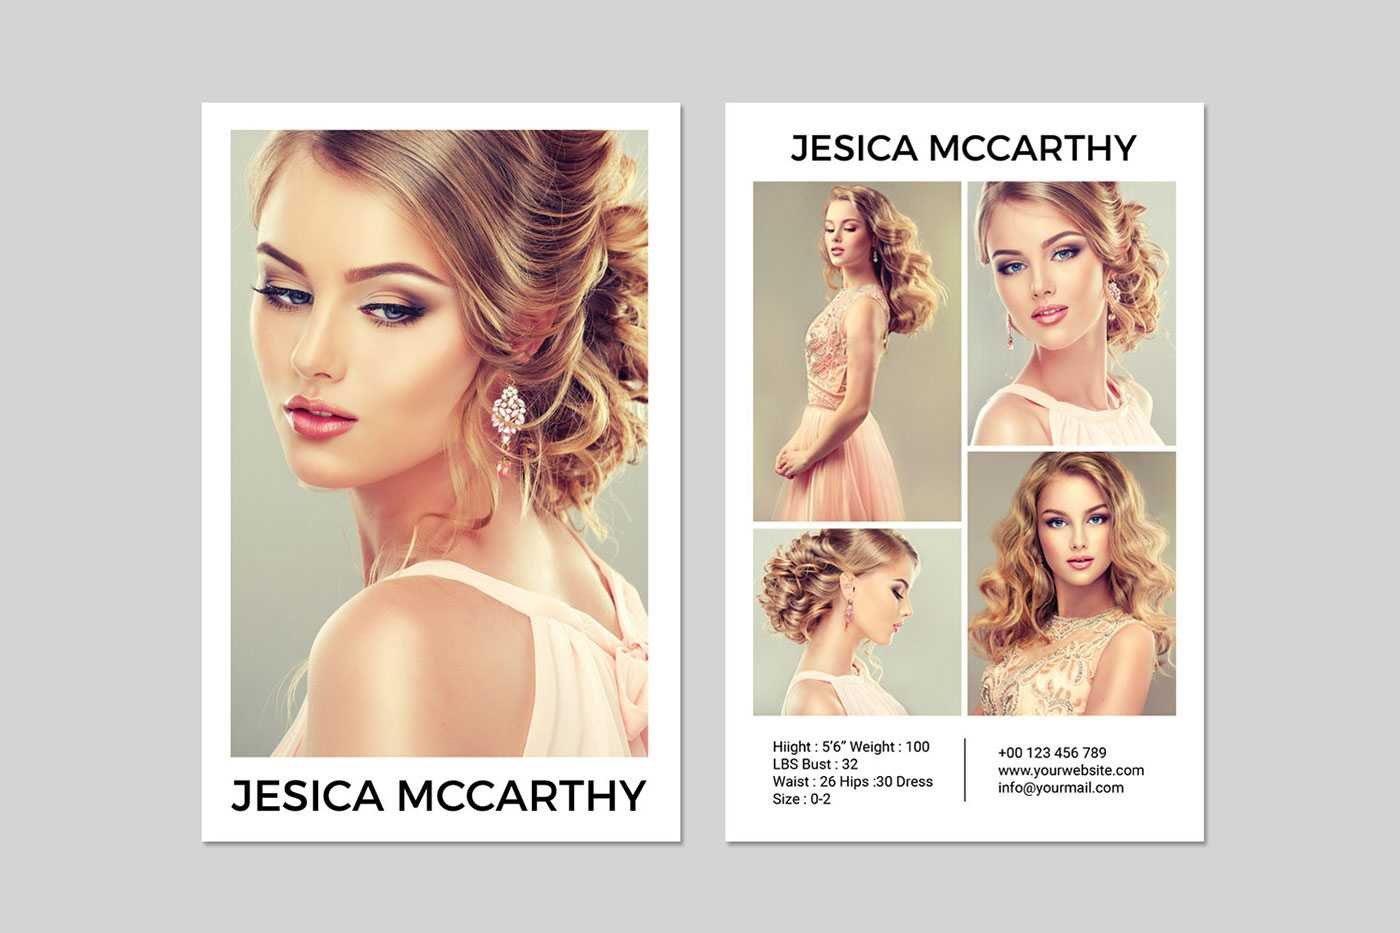 031 Model Comp Card Template Outstanding Ideas Psd Free Inside Free Model Comp Card Template